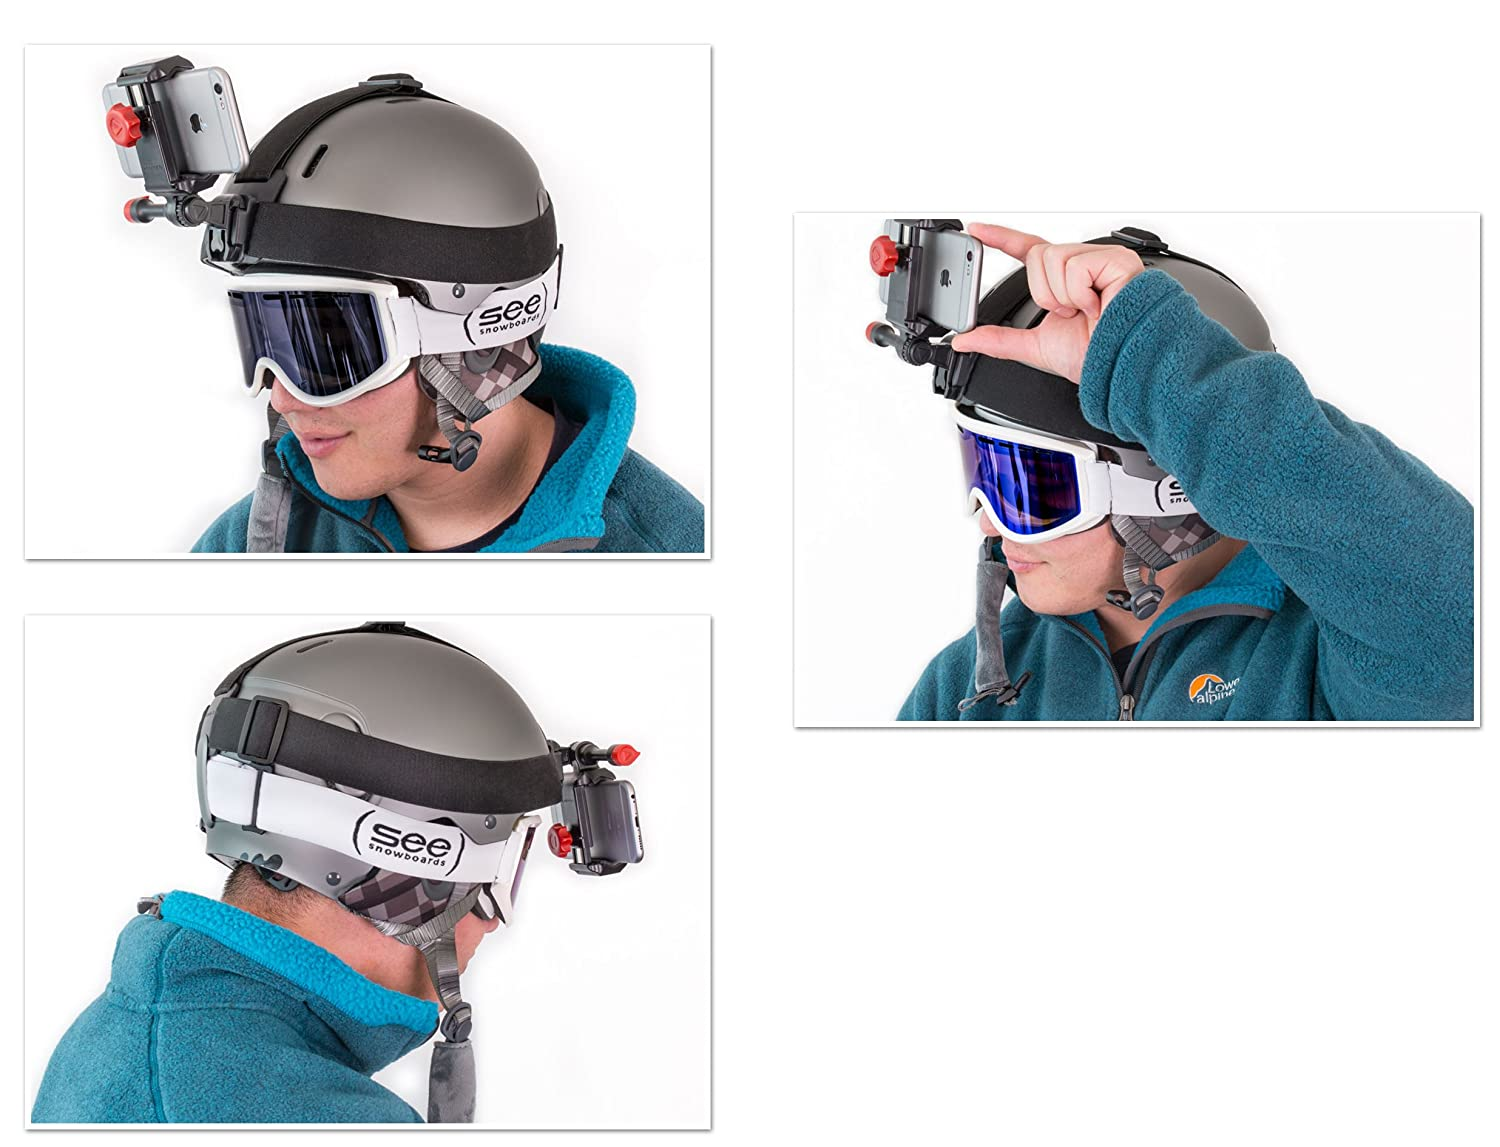 /& Hats Beanies Fits Your Smartphone iPhone Samsung Galaxy /& More Velocity Clip LYSB0171XLXQI-ELECTRNCS Ski Camera for Your Helmets